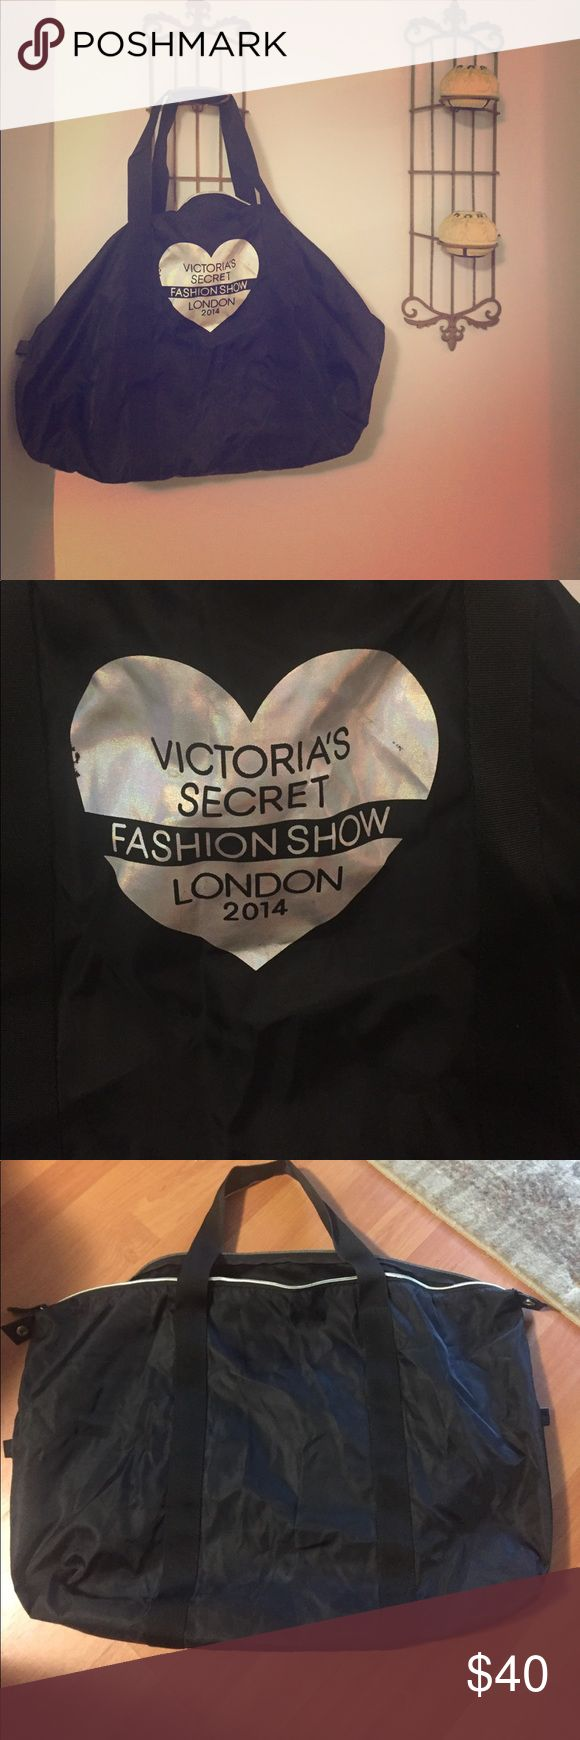 """VS Fashion Show bag 🌻 """"Victoria's Secret Fashion Show / London 2014"""" bag. Large. Black. One big zipper compartment. Small scratch on silver heart (pictured), otherwise perfect condition. Victoria's Secret Bags"""